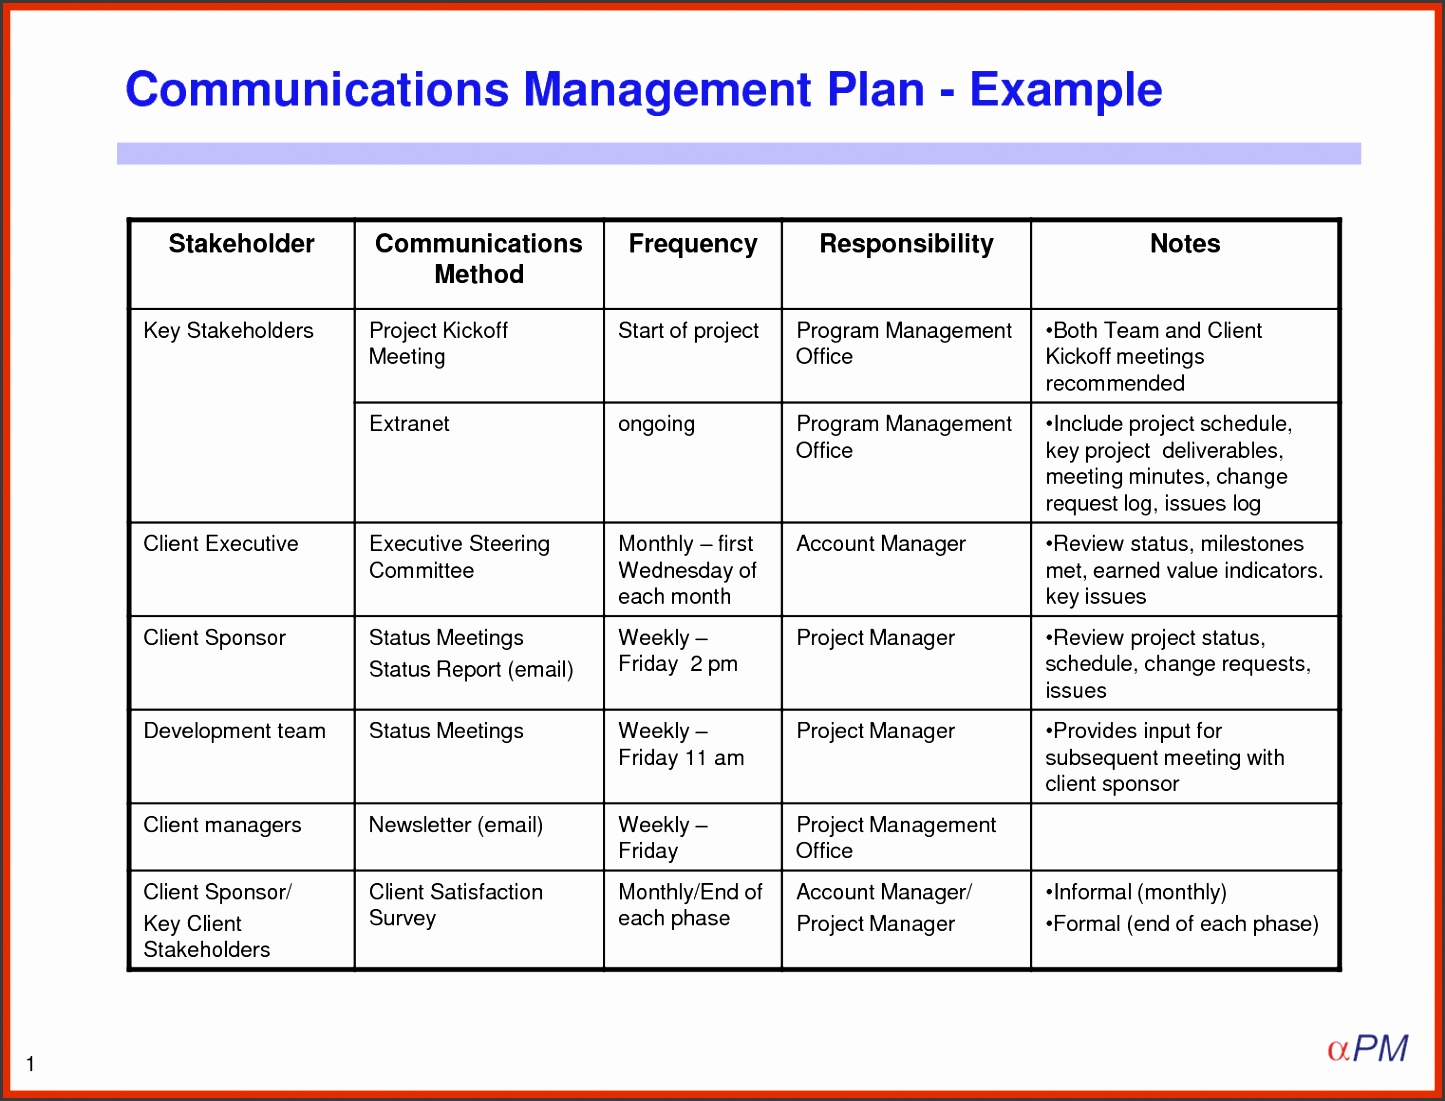 Project management plan template present day photo example munication z 7 bbhpg 2 4